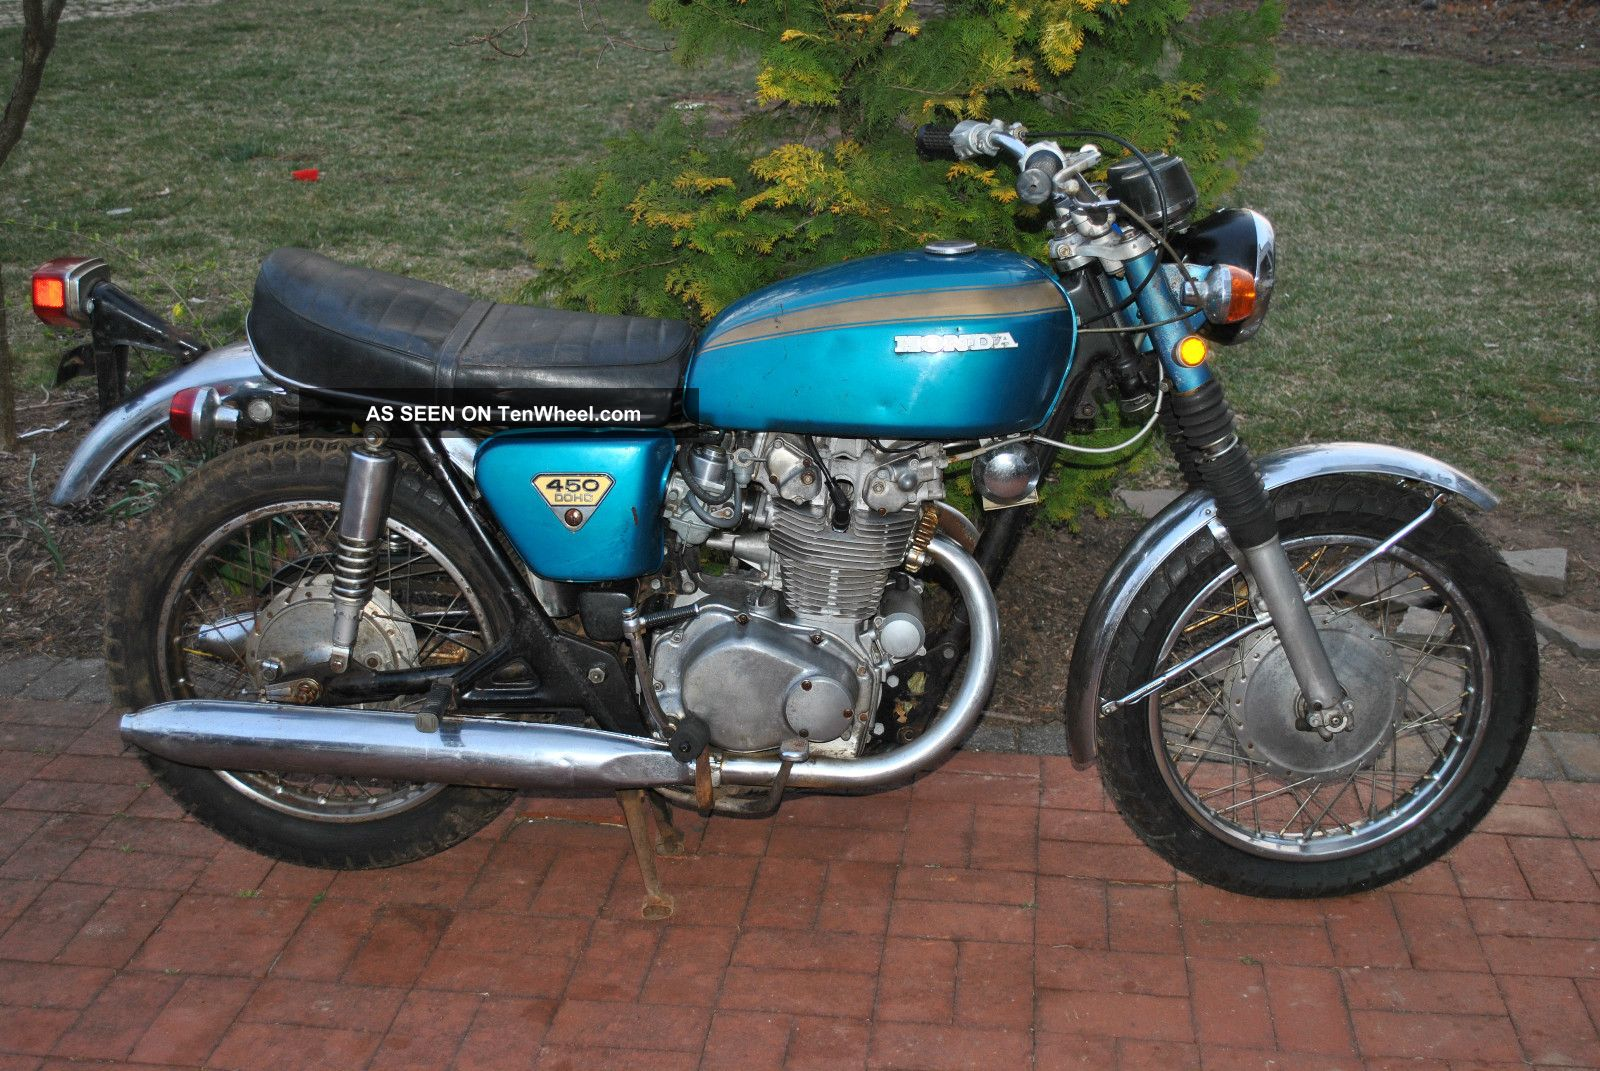 305 Scrambler Wiring Diagram besides Wiring Diagrams 1973 Triumph Tr6 likewise 1969 Triumph Bonneville T120r additionally 1972 Triumph Bonneville Wiring Diagram as well 120748 Mk1 Ford Focus With 17 Rs7 Alloys On. on 1963 triumph bonneville wiring diagram